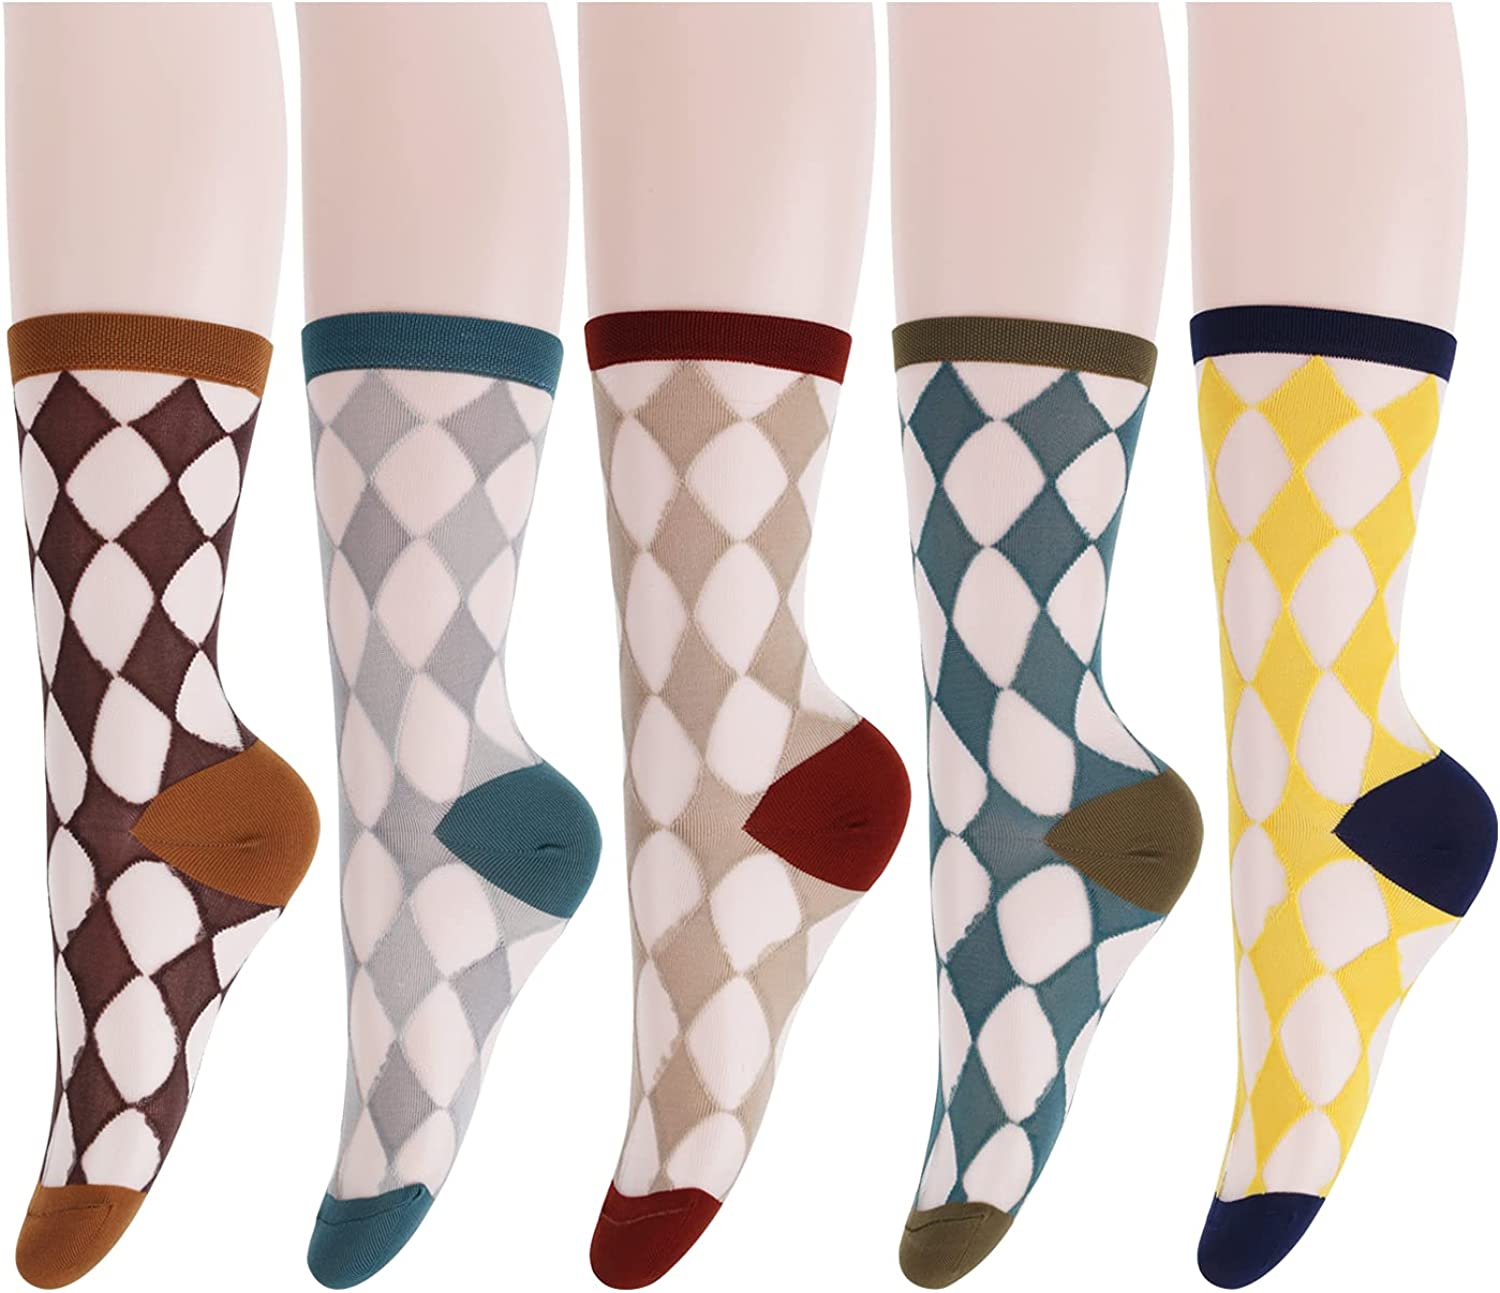 Womens Girls Sheer Socks Mesh Transpa Max 40% OFF Lace lowest price Ankle Crew High